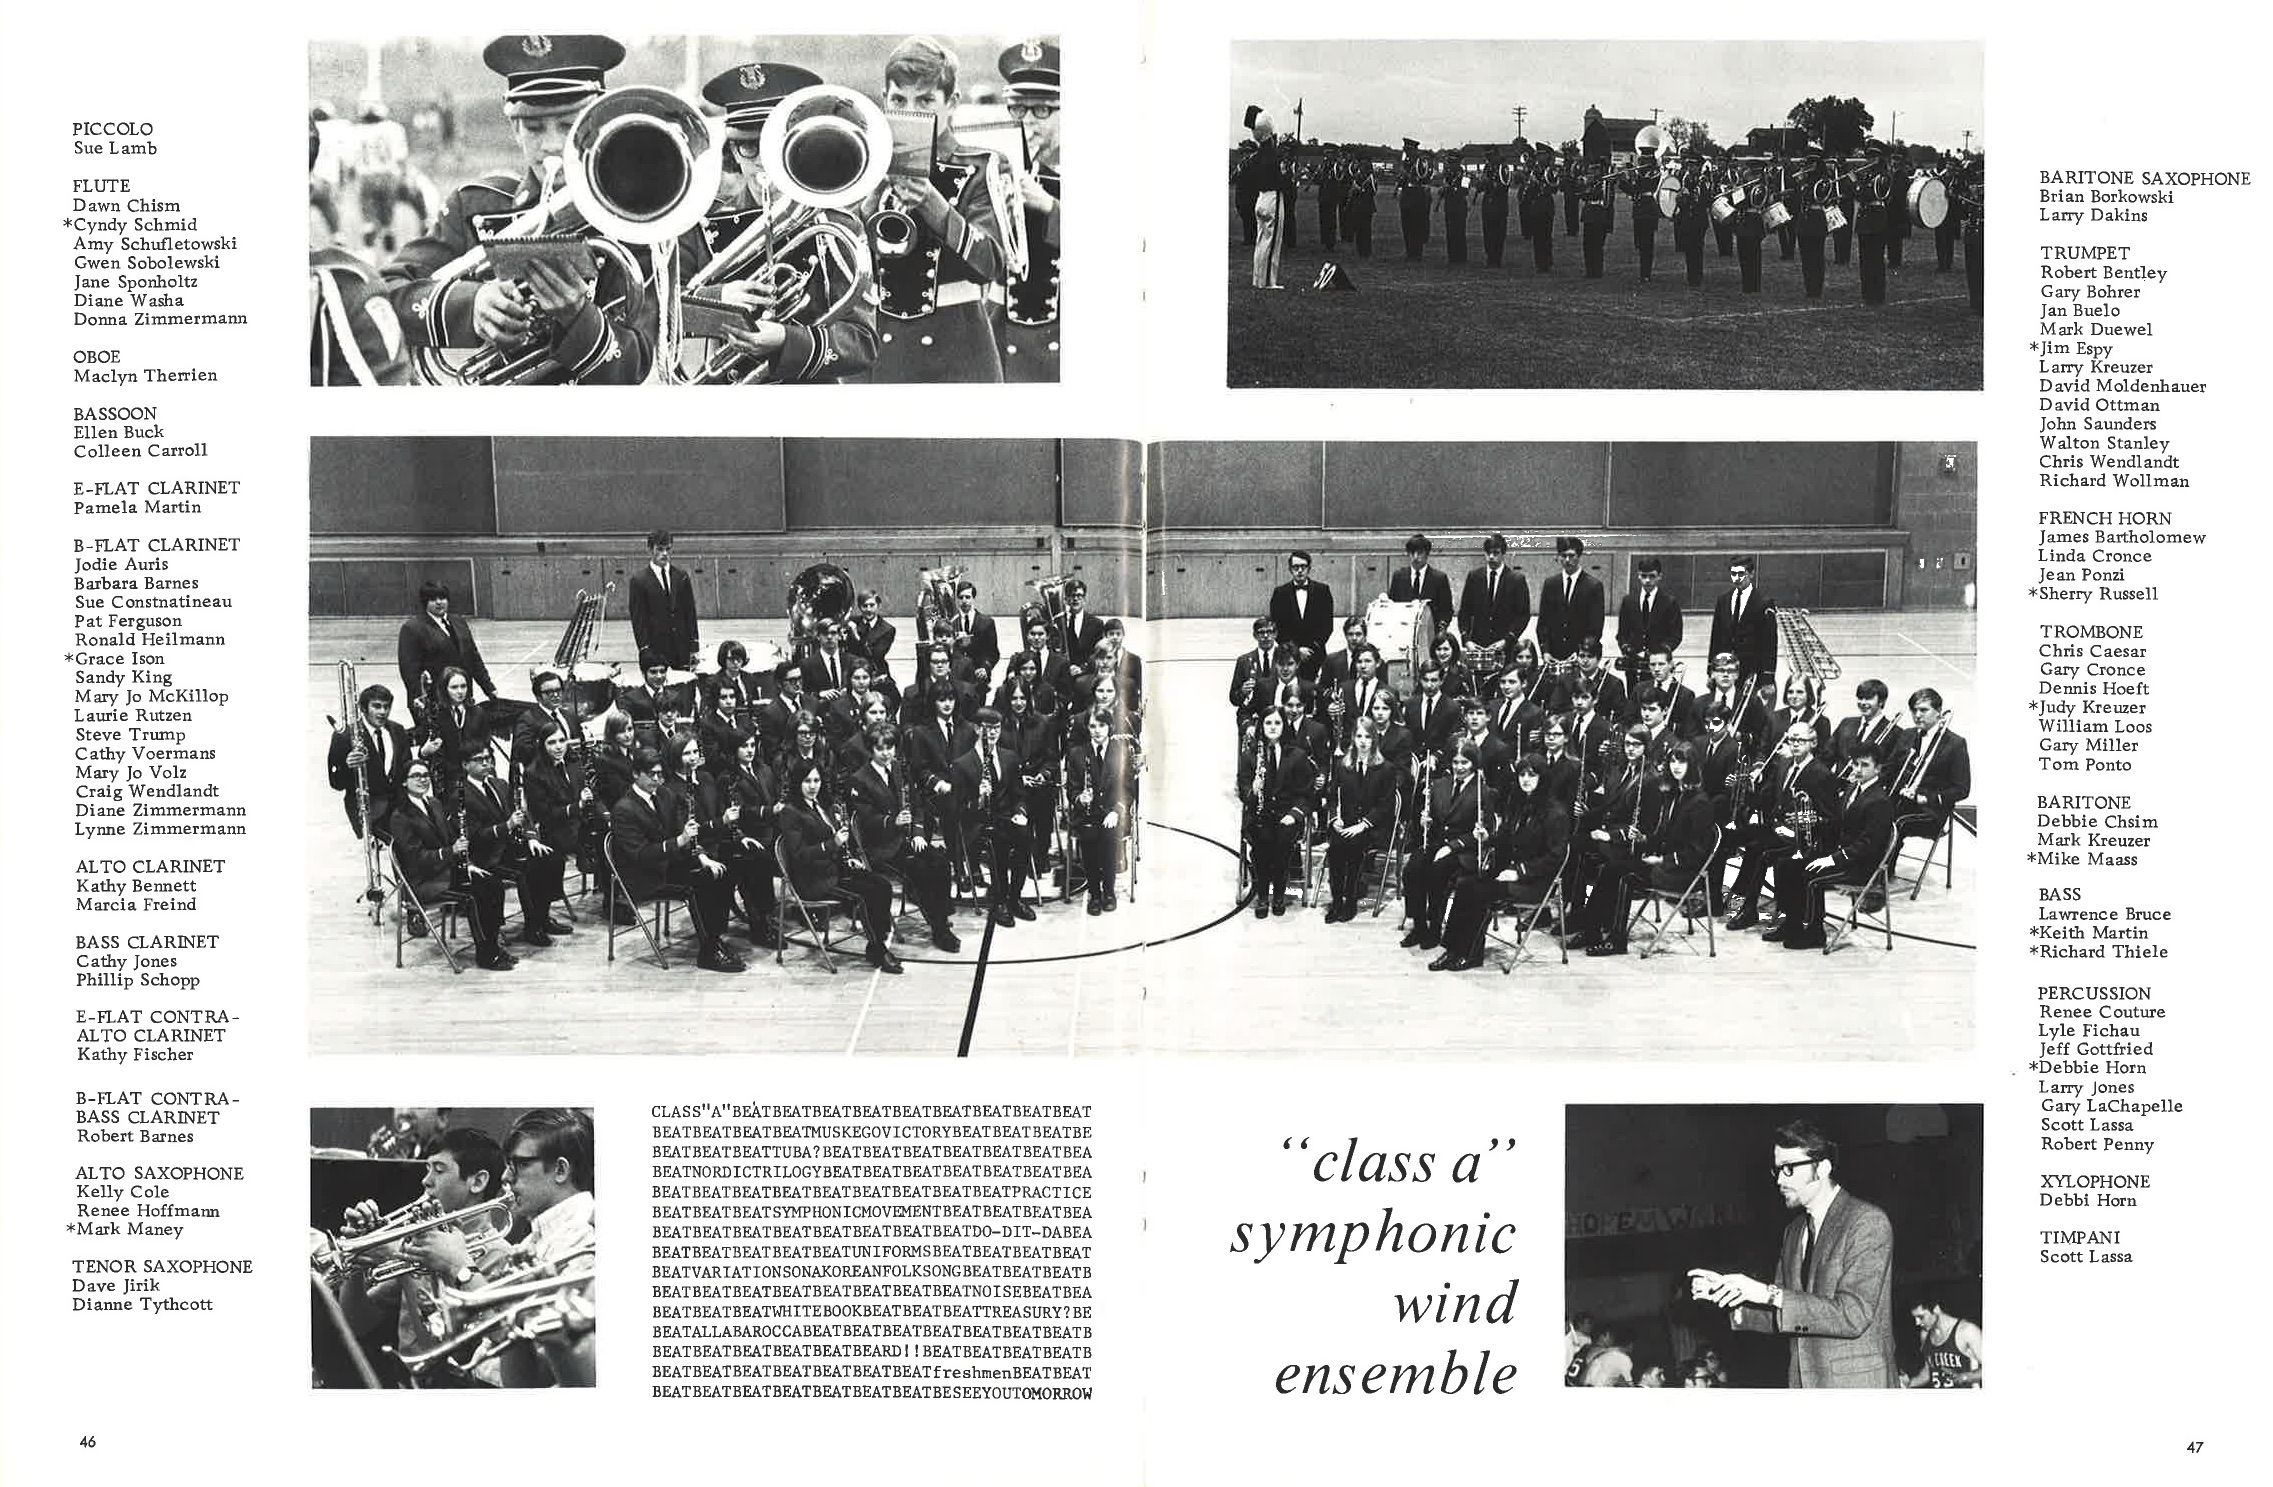 1970_Yearbook_46-47.jpg